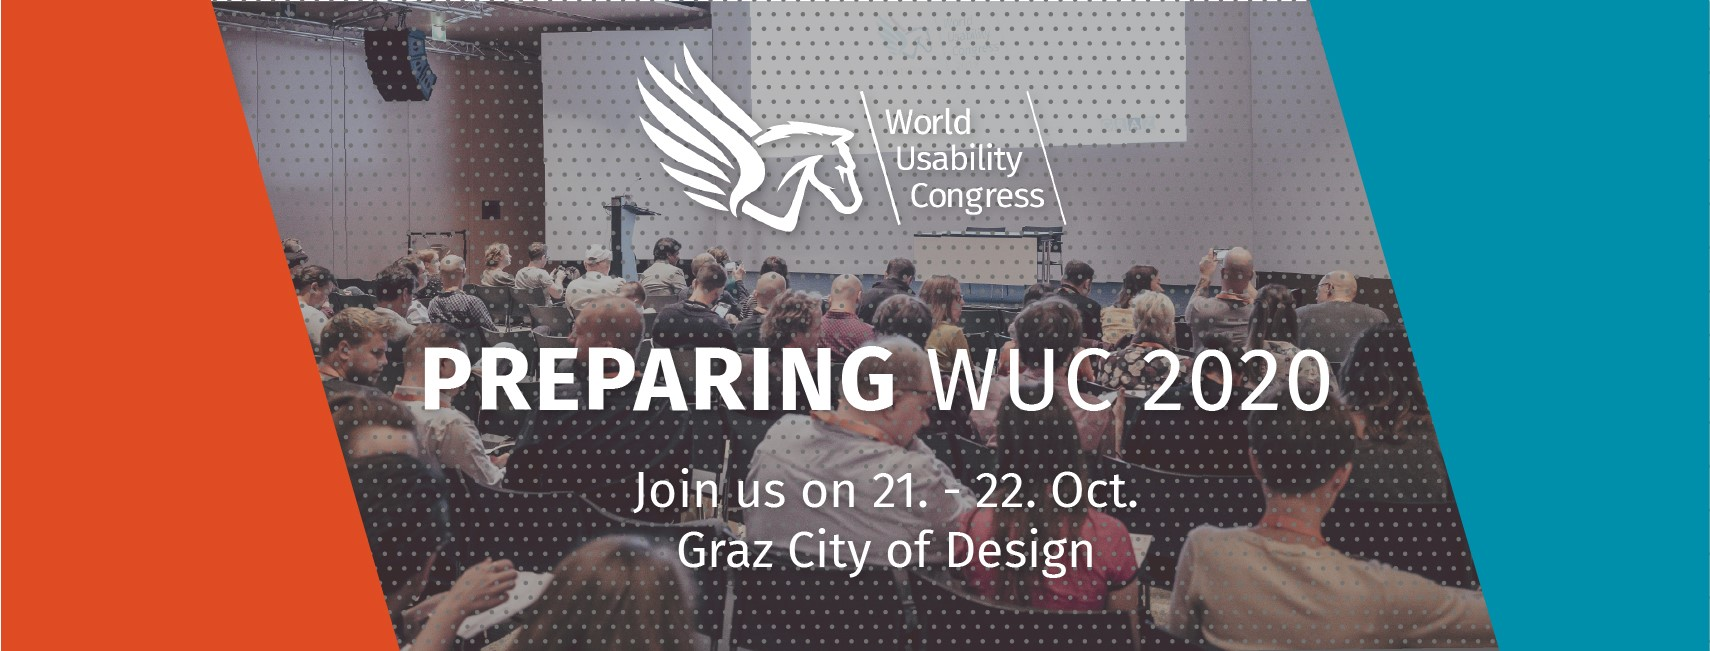 World Usability Congress 2020